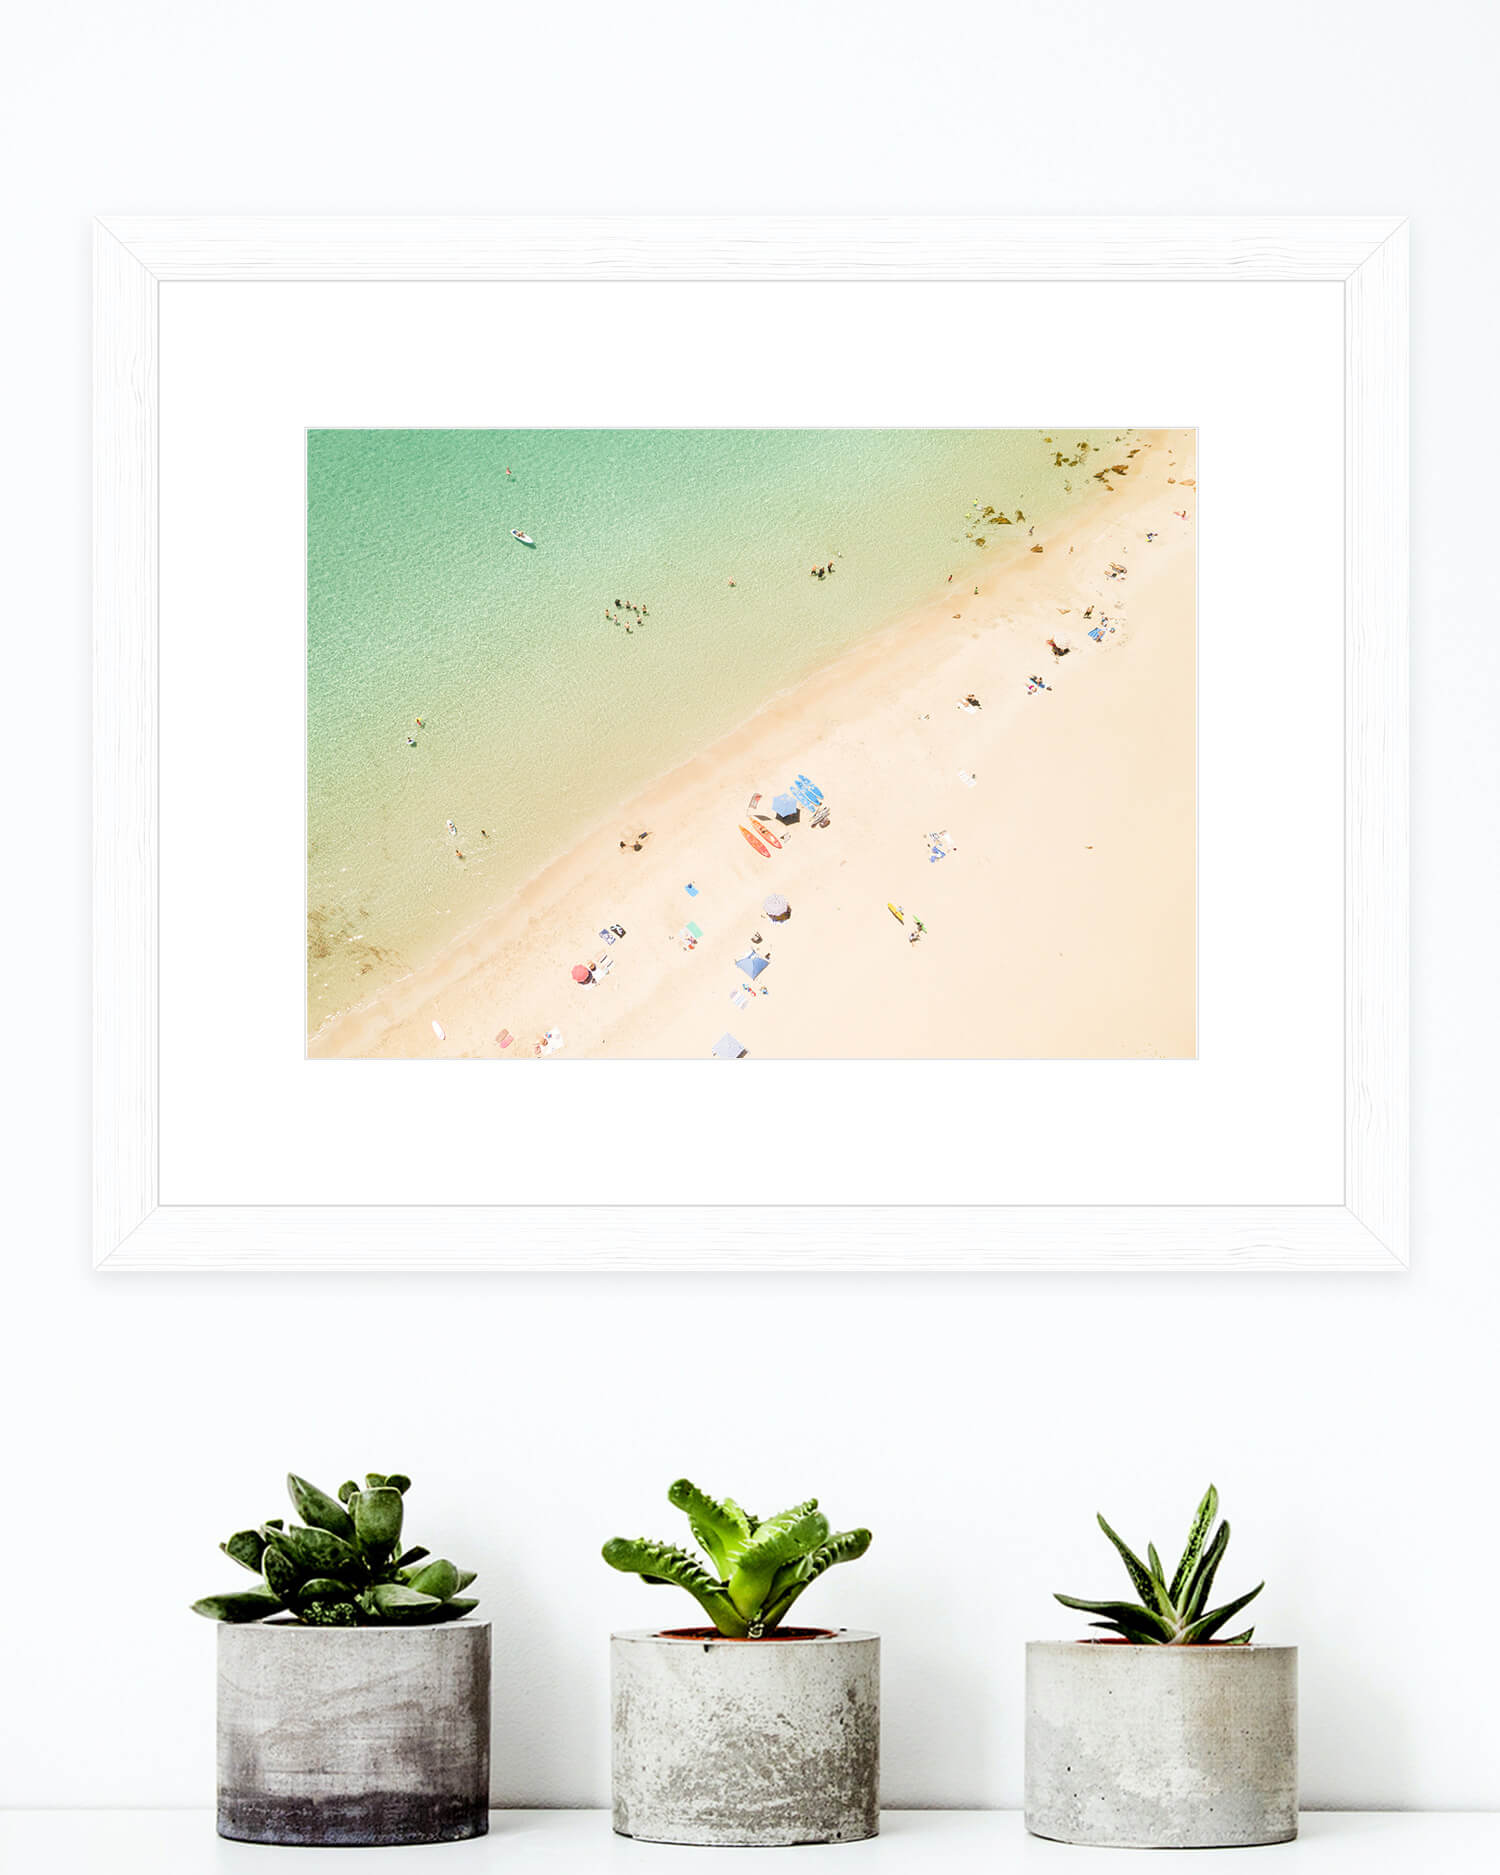 Azure Co - Landscape and Surf Photography, Wall Art Hanging Image for interior design, Western Australia